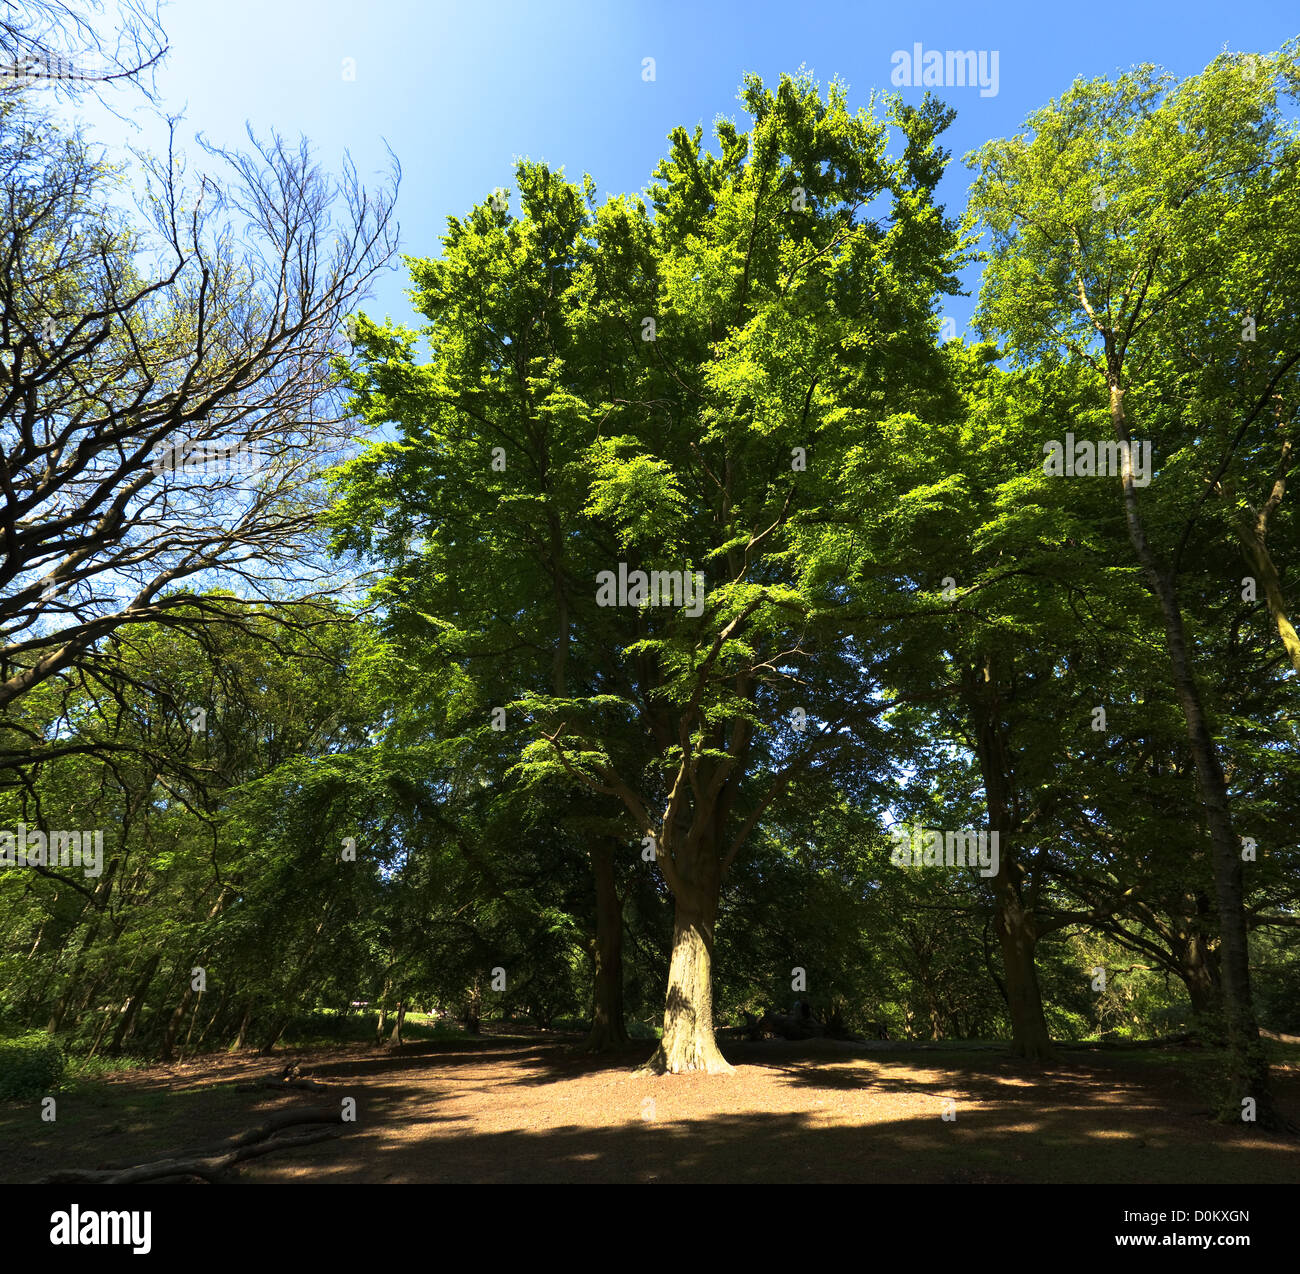 A big tree in the forests of Hampstead Heath. - Stock Image